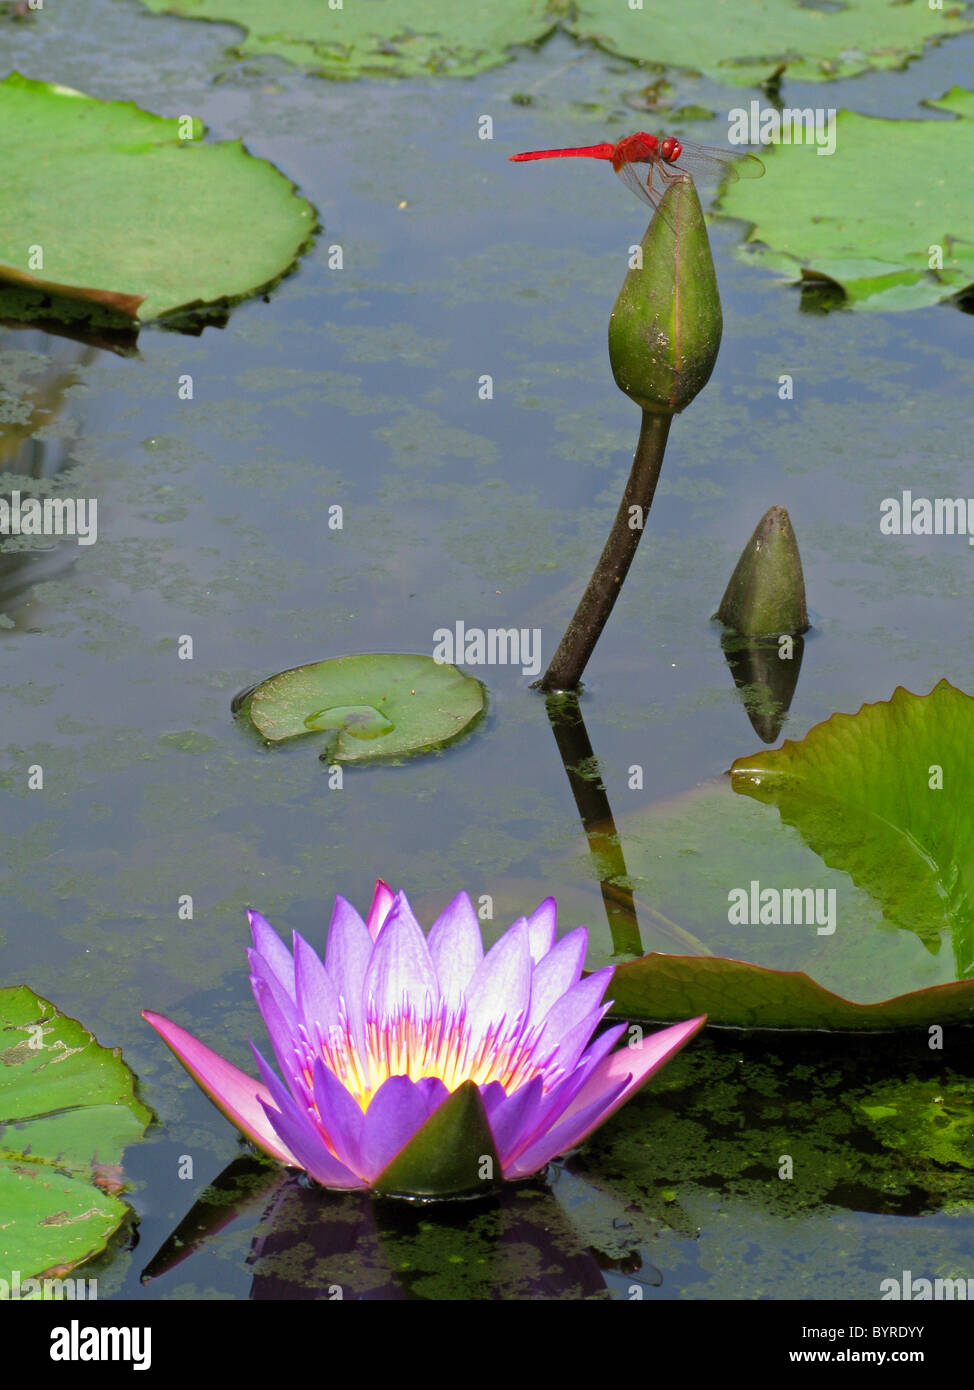 Lilly Pond With Water Lily Aka Lotus Flower Nelumbo Nucifera And